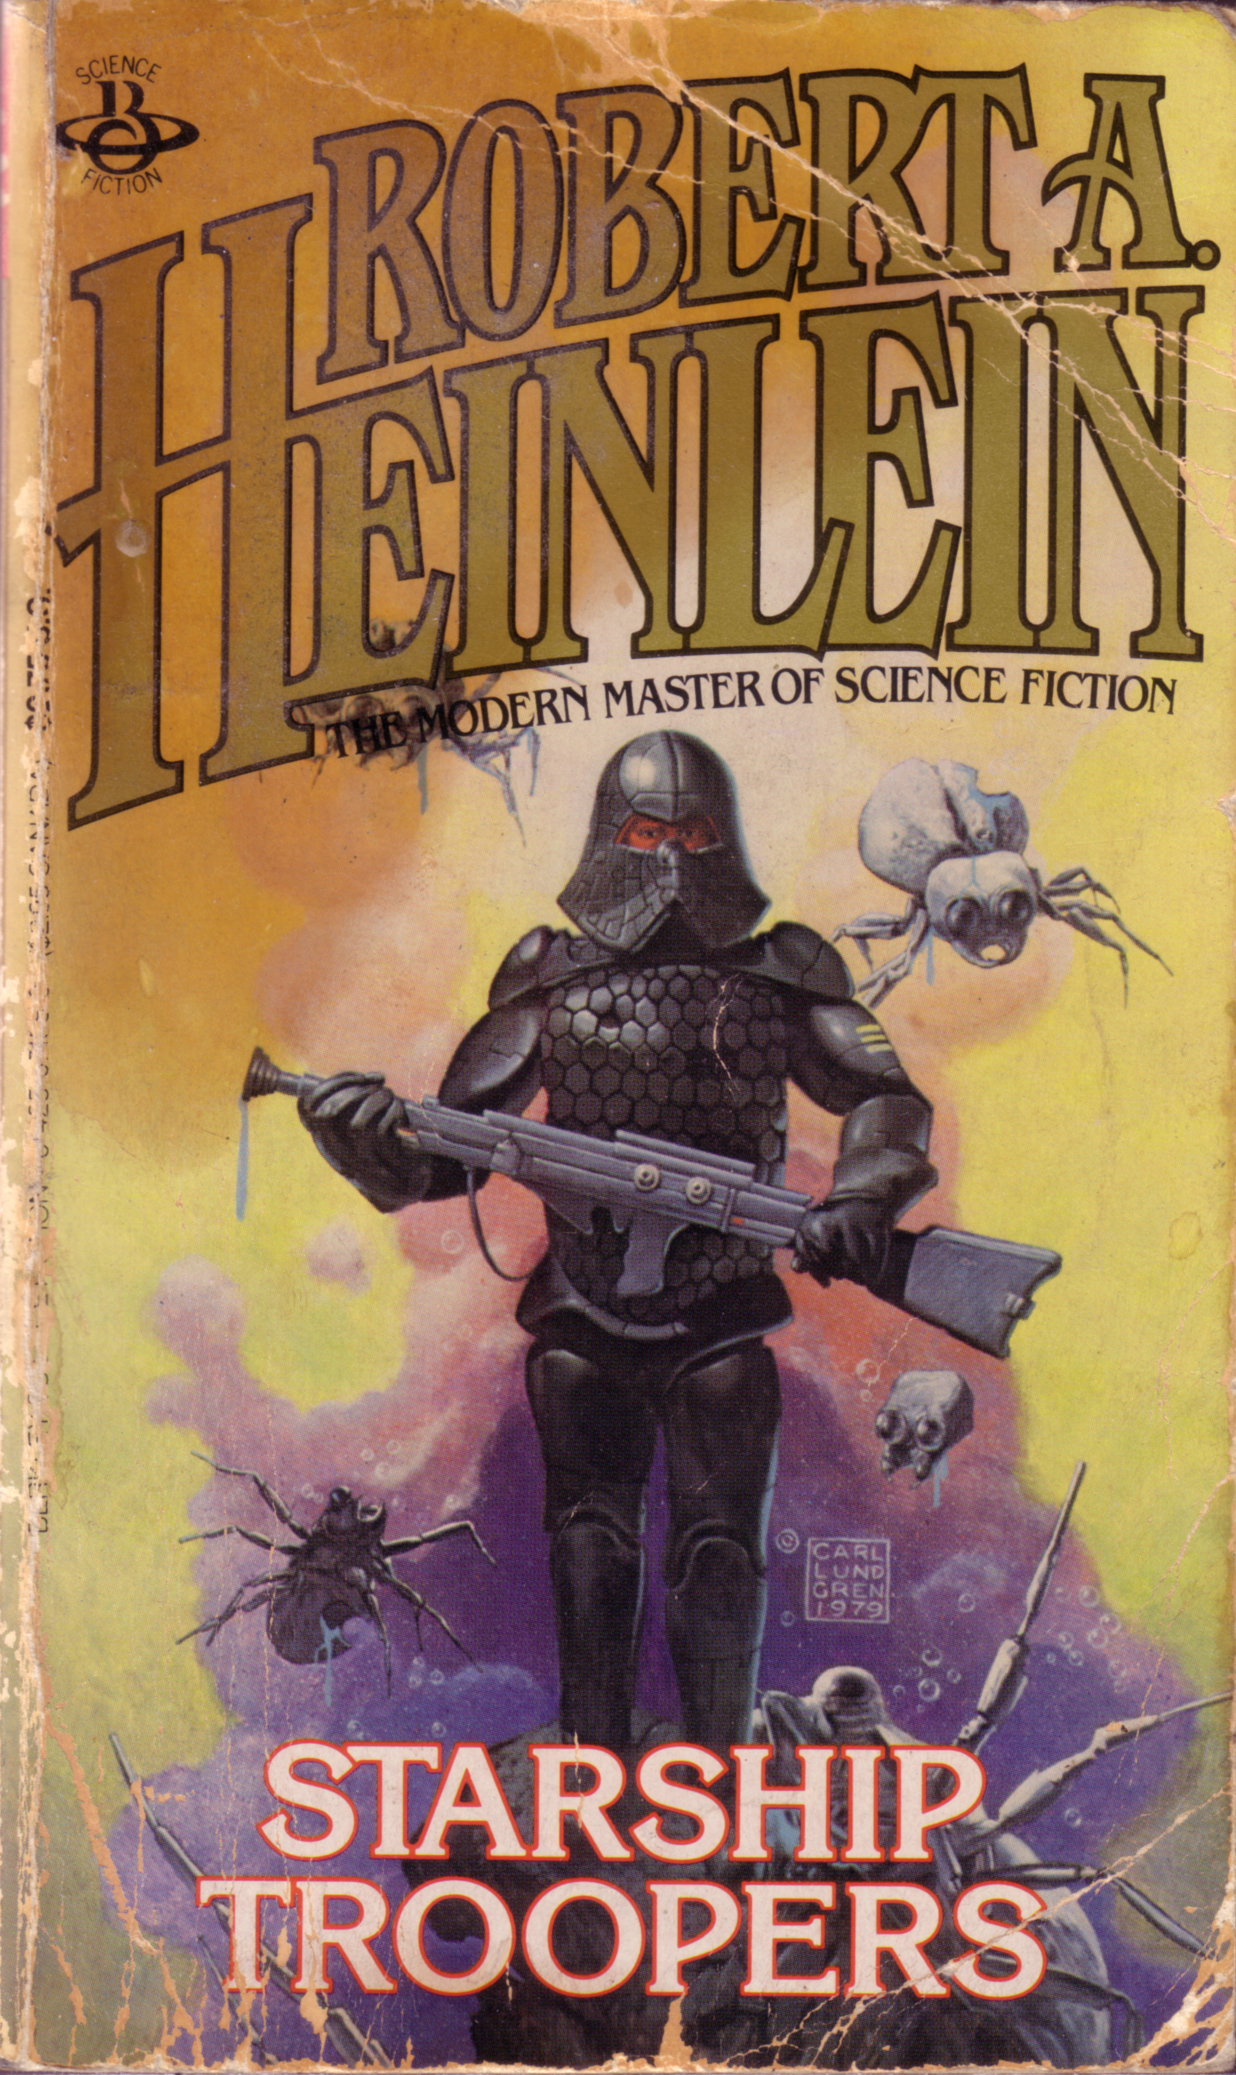 Starship Troopers by Robert A. Heinlein Copyright 1984 Berkeley Books  Artwork Copyright Carl Lundgren 1979